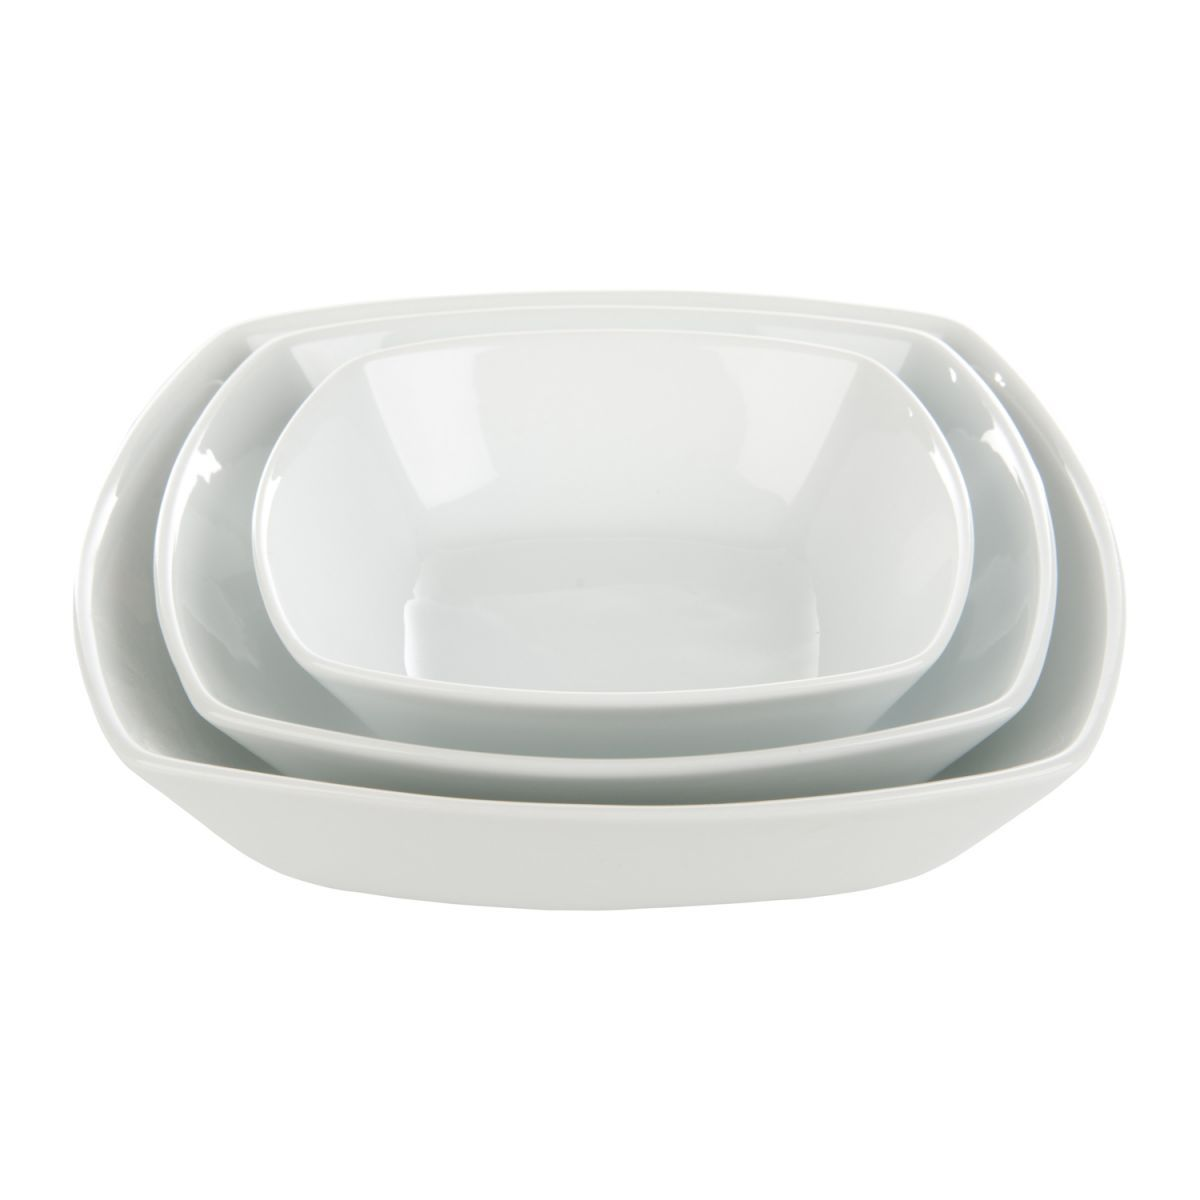 bowl salad square 16x16 cm box6